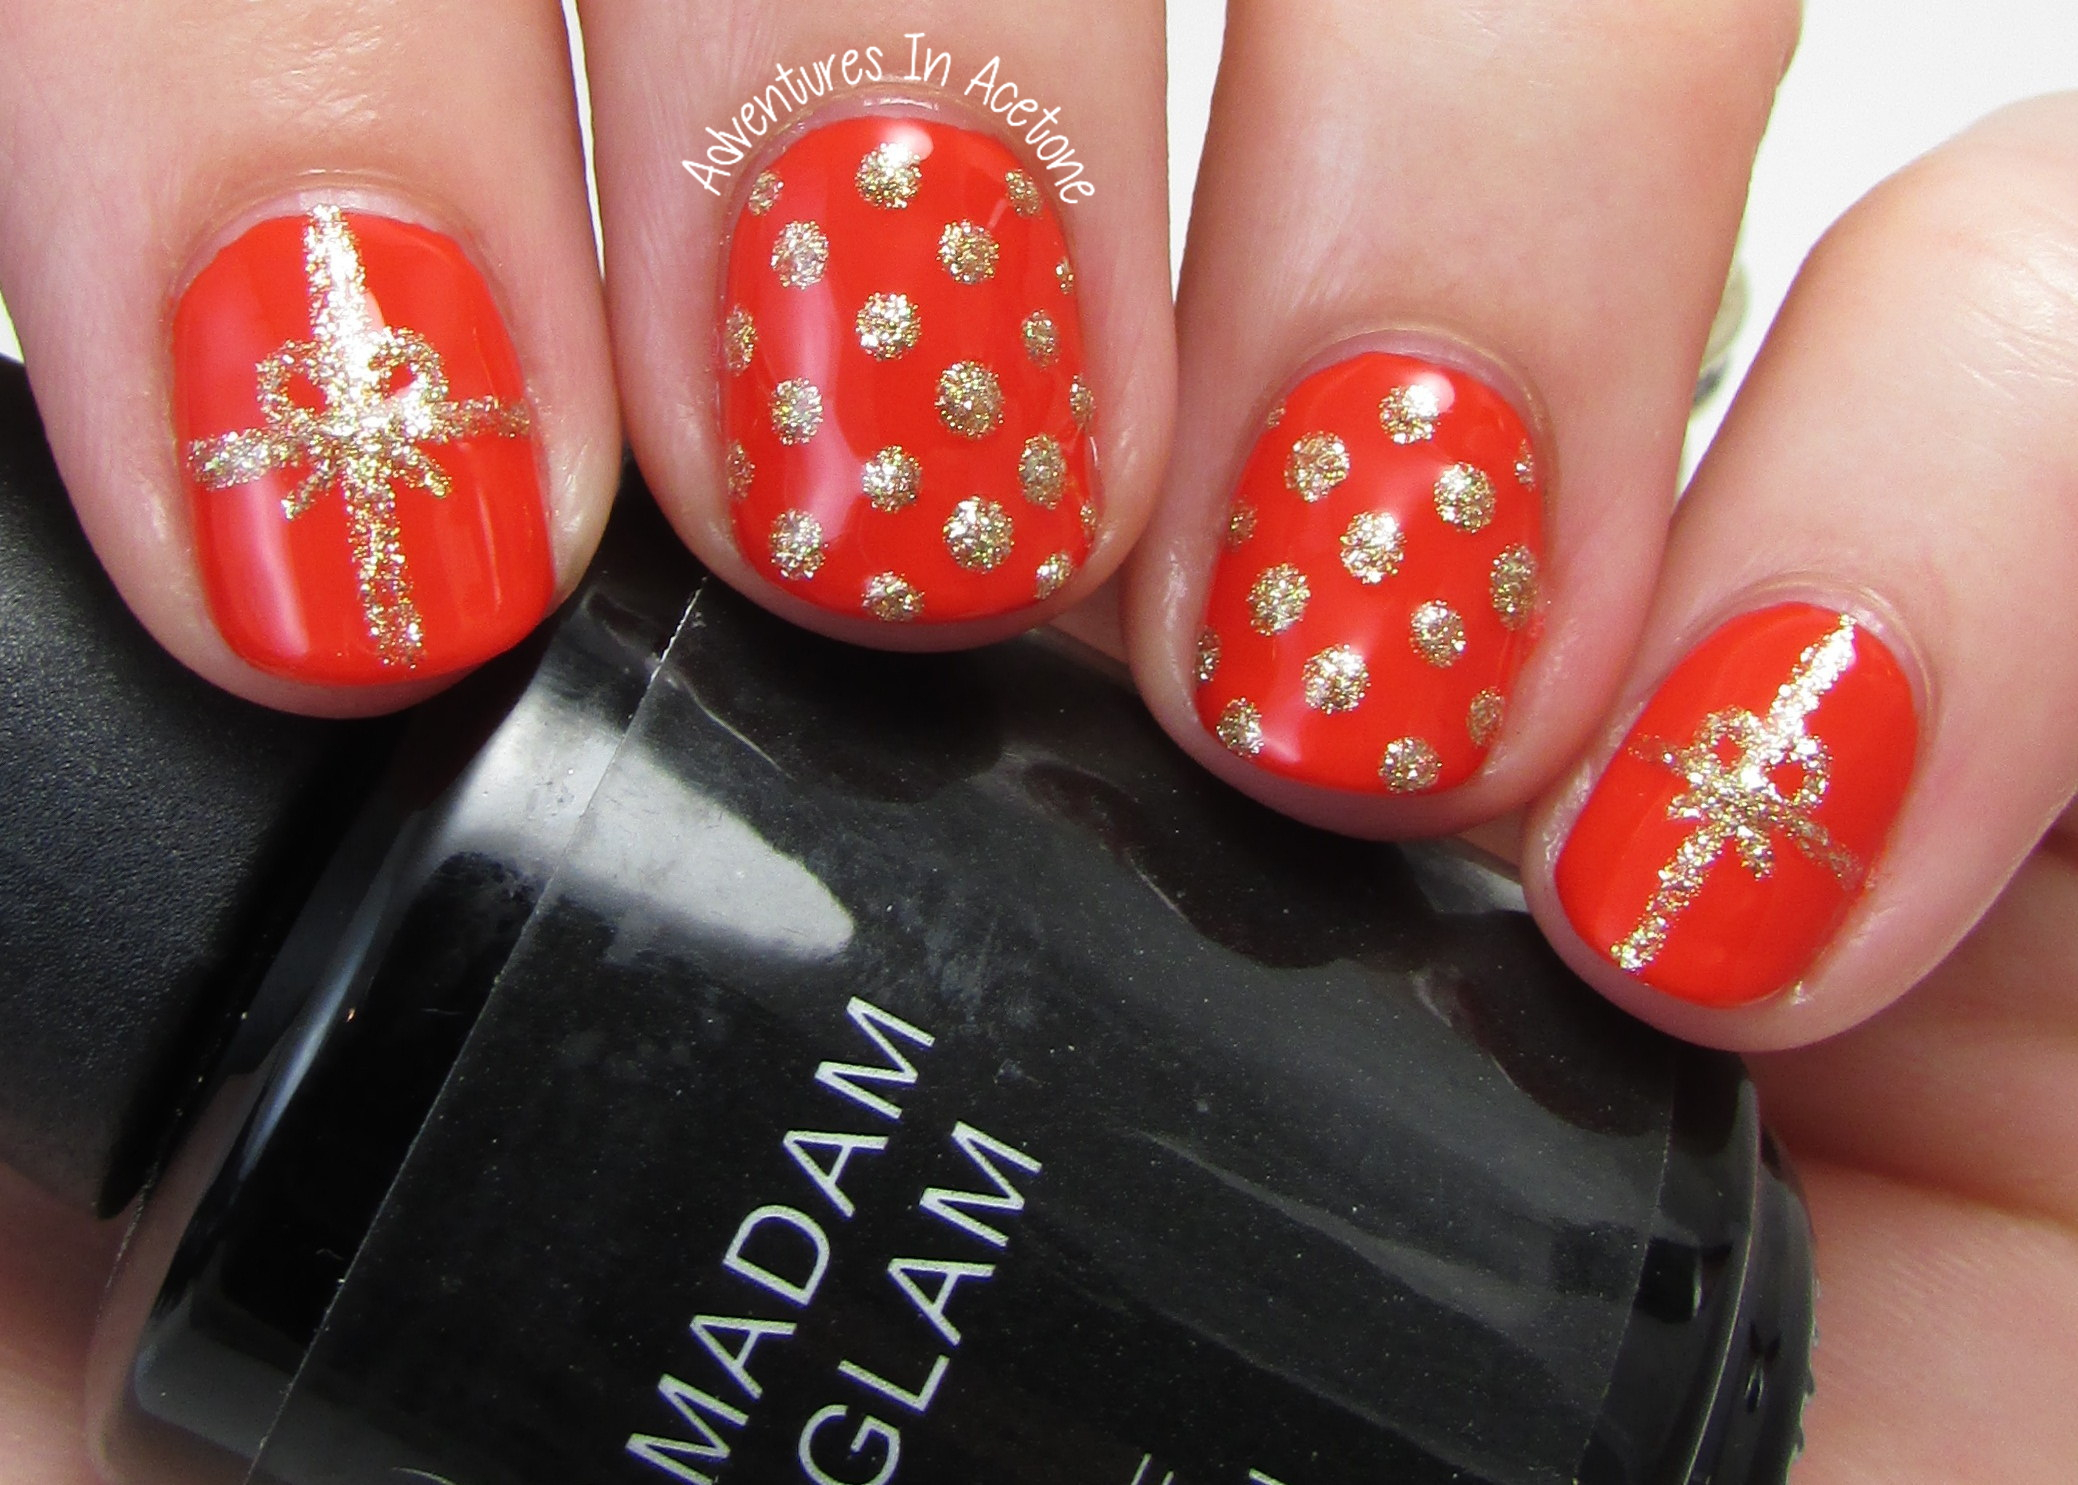 Easy Holiday Nail Art With Madam Glam Gel Polish Adventures In Acetone